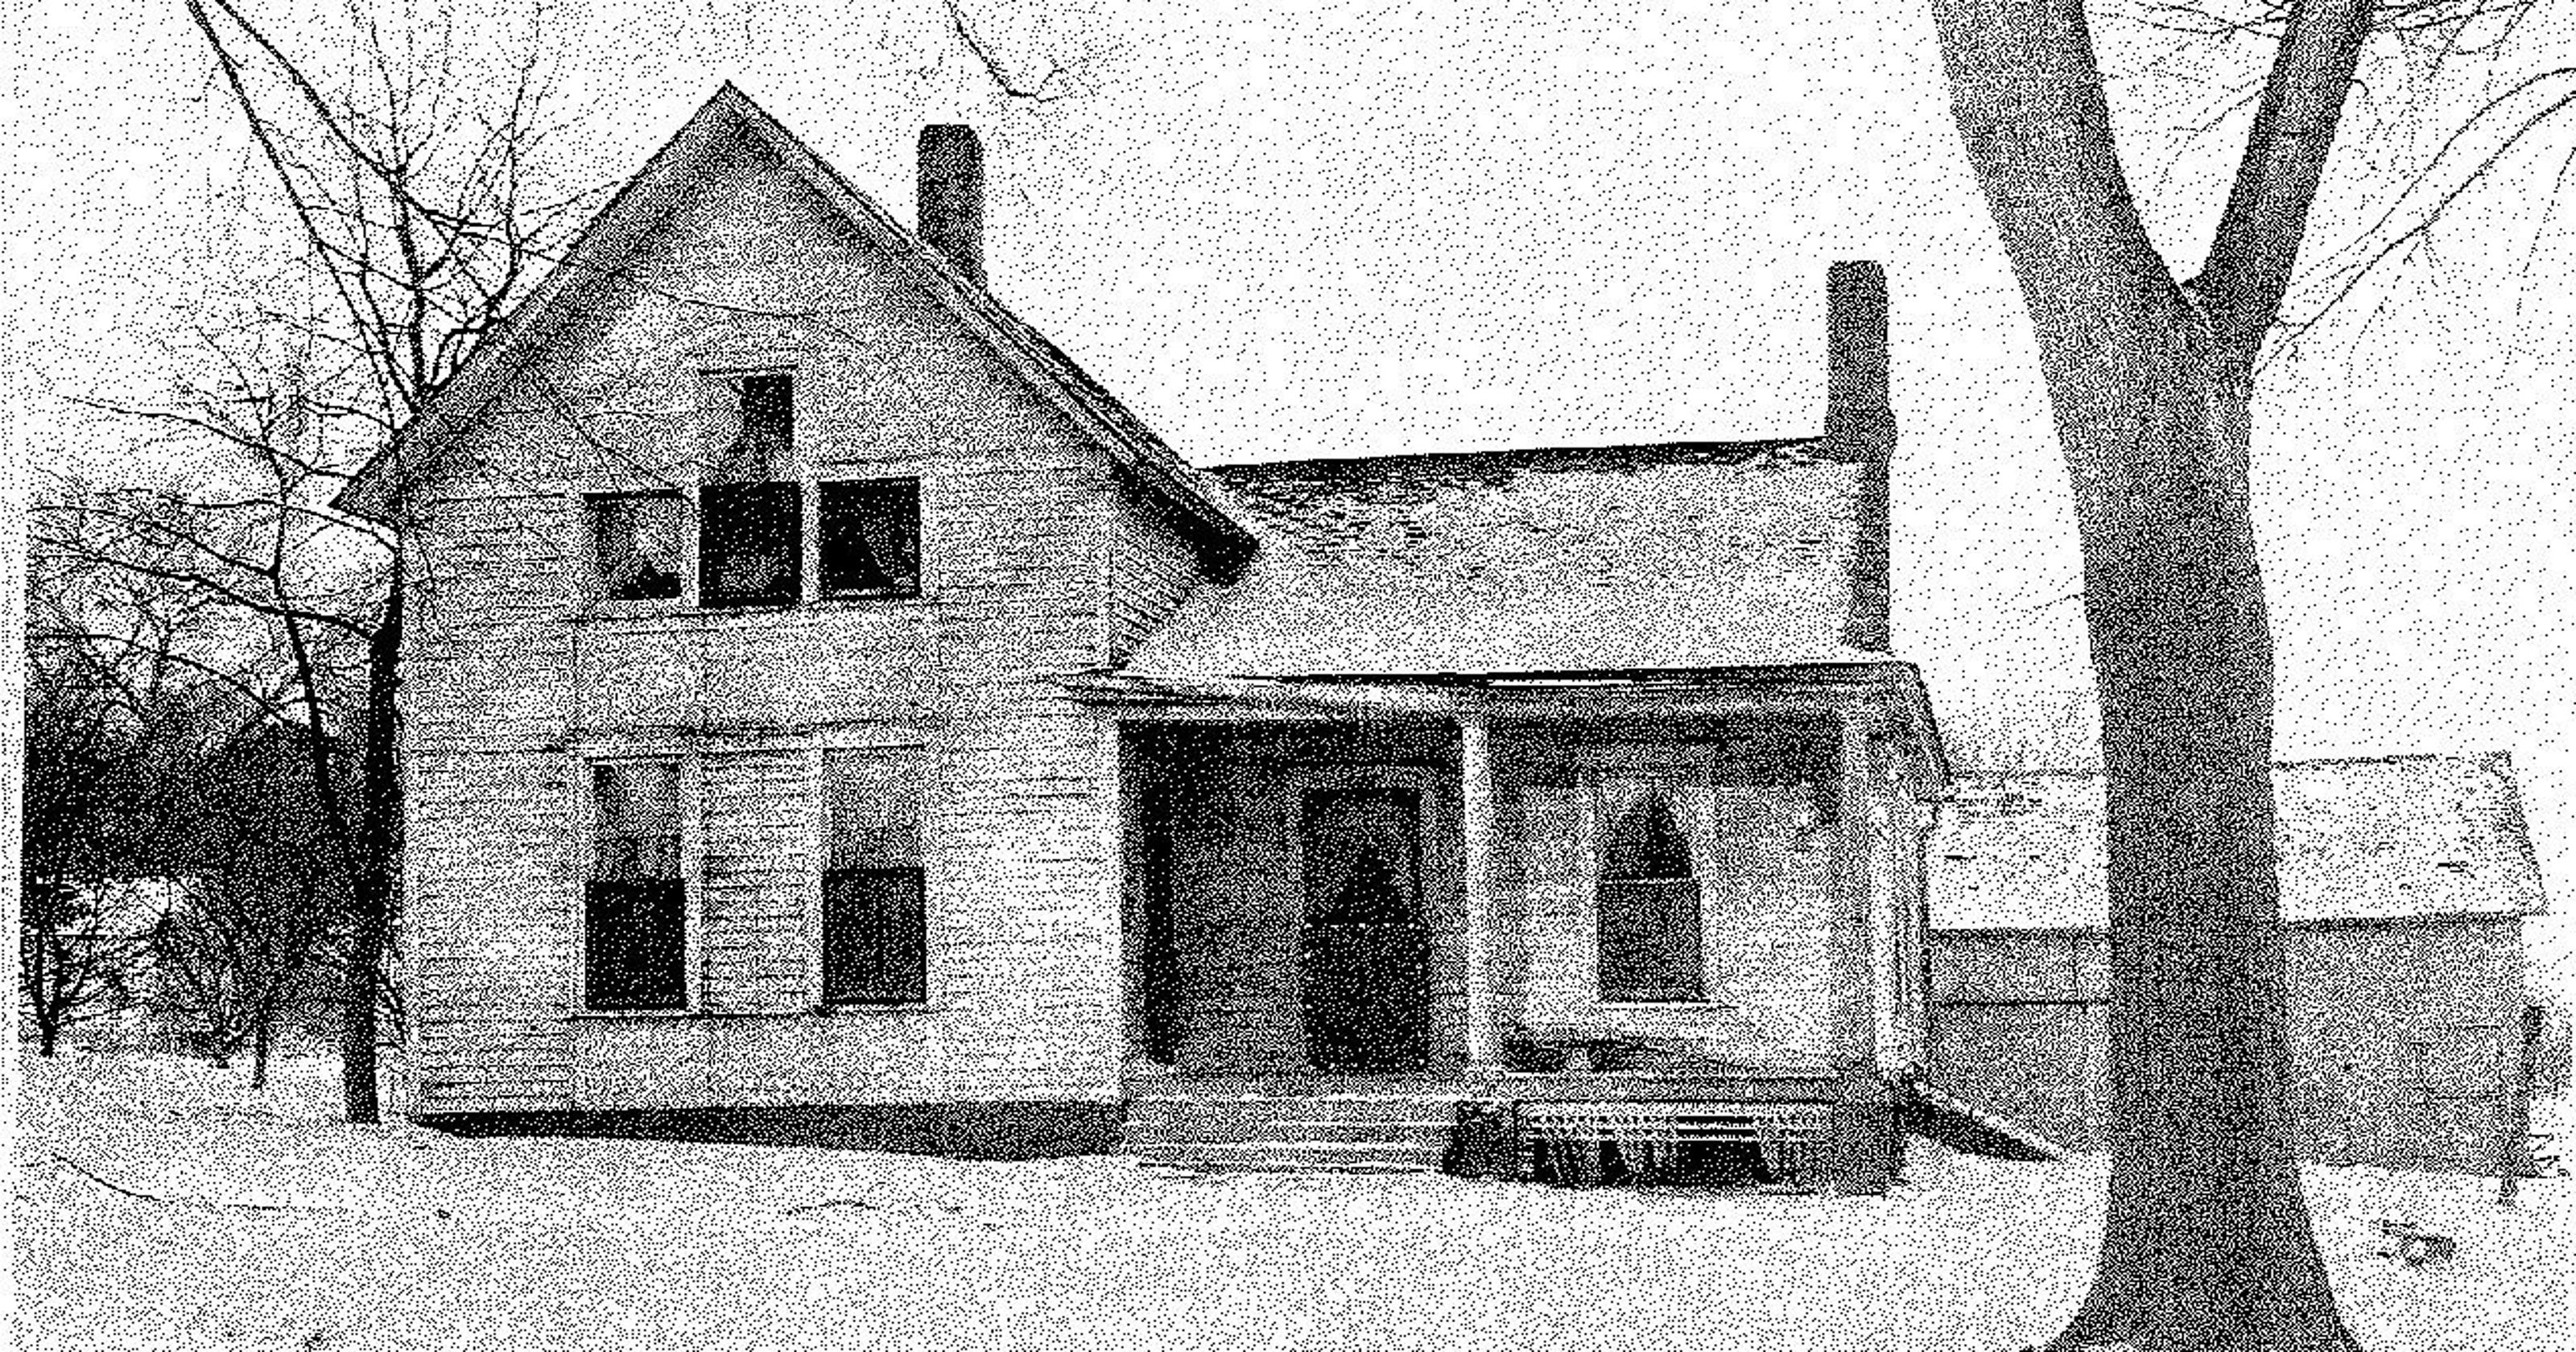 This photo from inside the Villisca Axe Murder House is